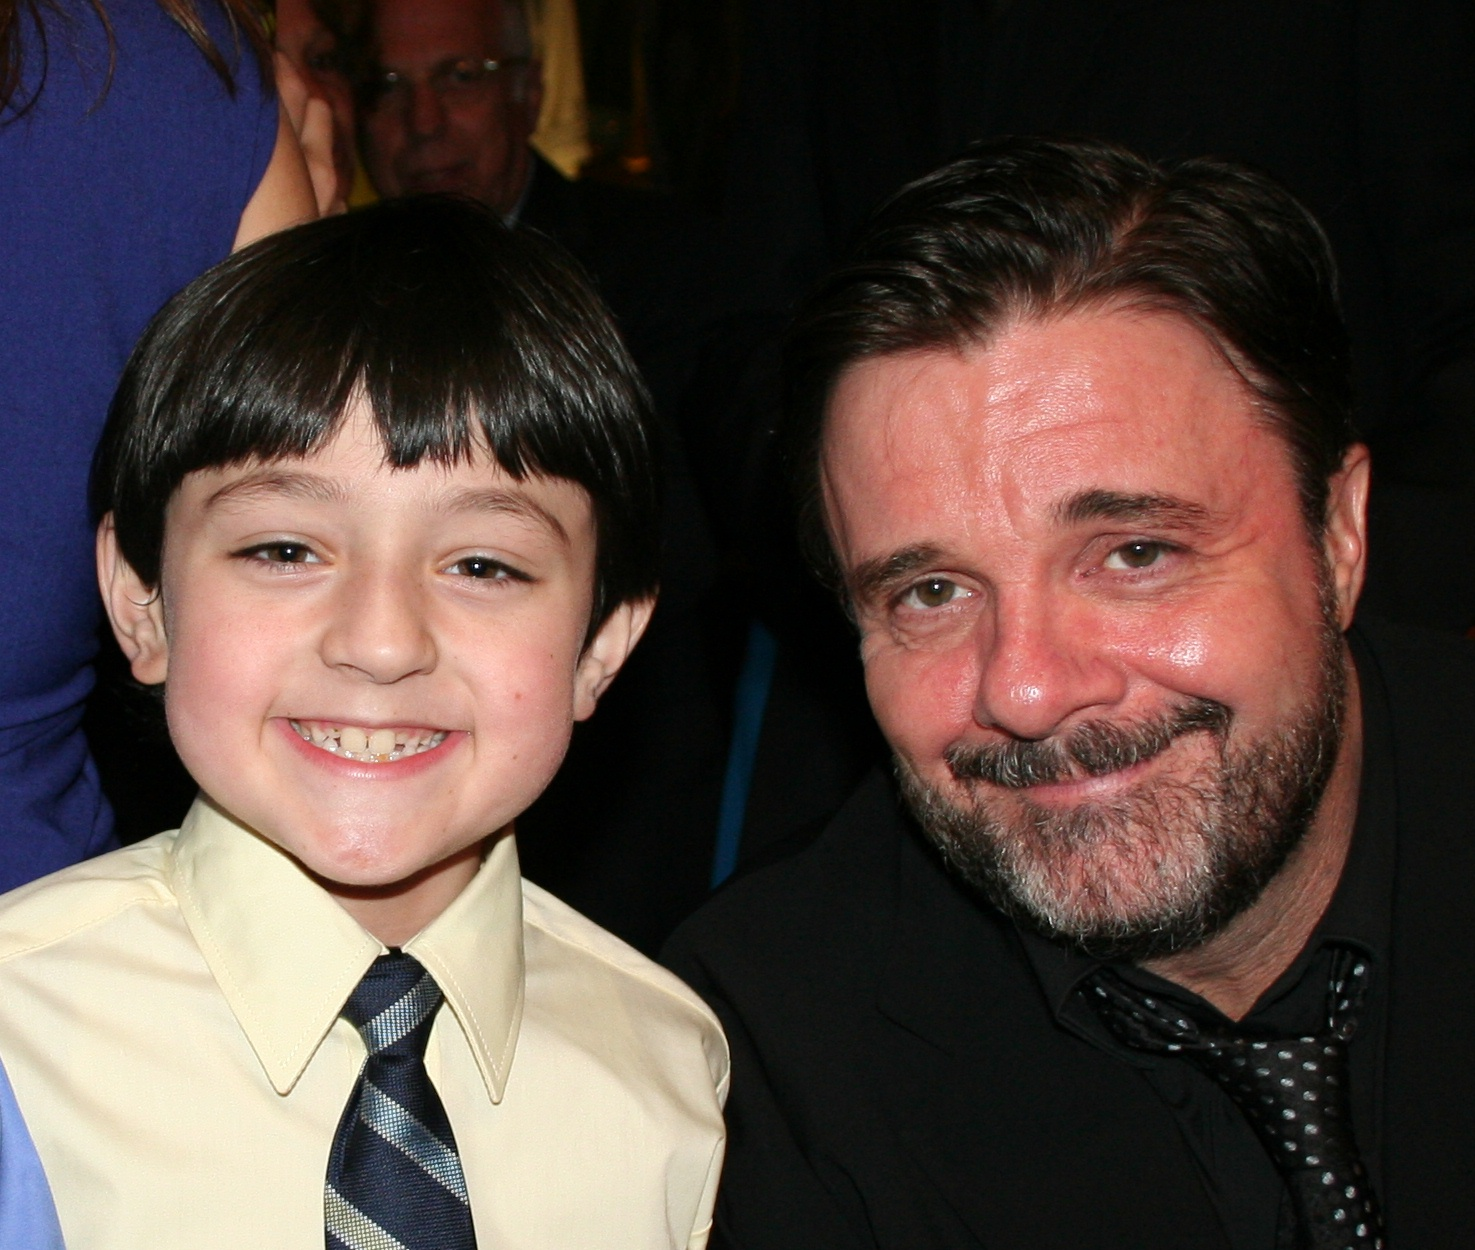 Student, Cameron Clifford with Nathan Lane, opening night of Waiting for Godot, NYC April 30, 2009 at Studio 54! Cameron played 'The Boy' opposite Mr. Lane, Bill Irwin. John Goodman and John Glover